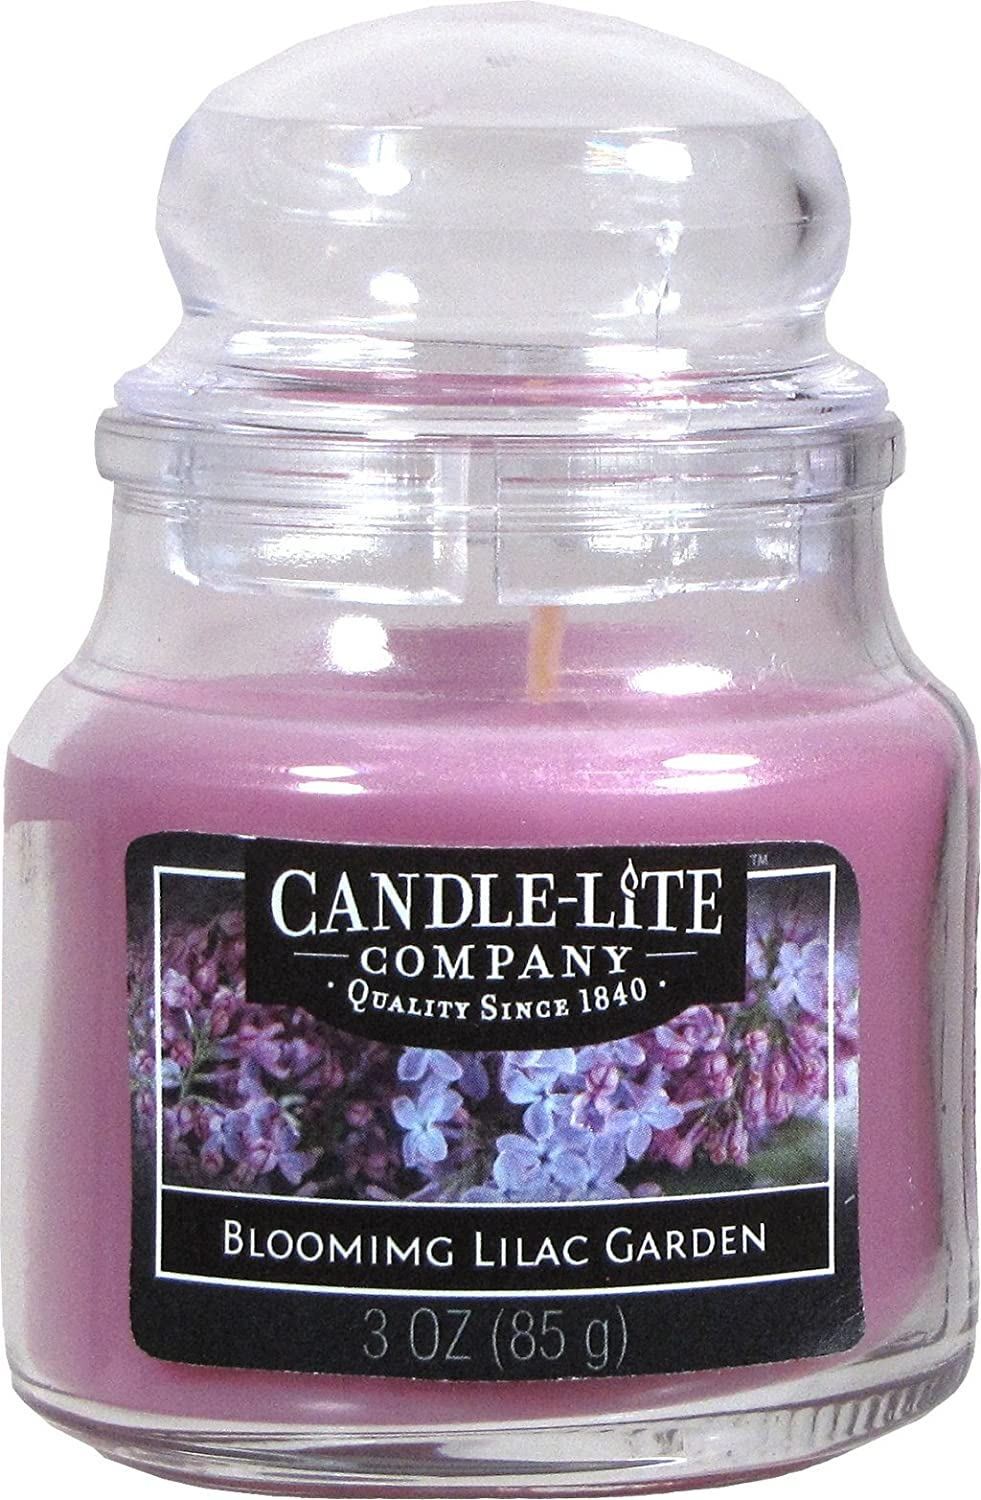 Candle Lite – Large Jar Candle – Blooming Lilac Garden 85g/Beads 6 x 6 x 9.5 cm Candle-liteTM 4173382